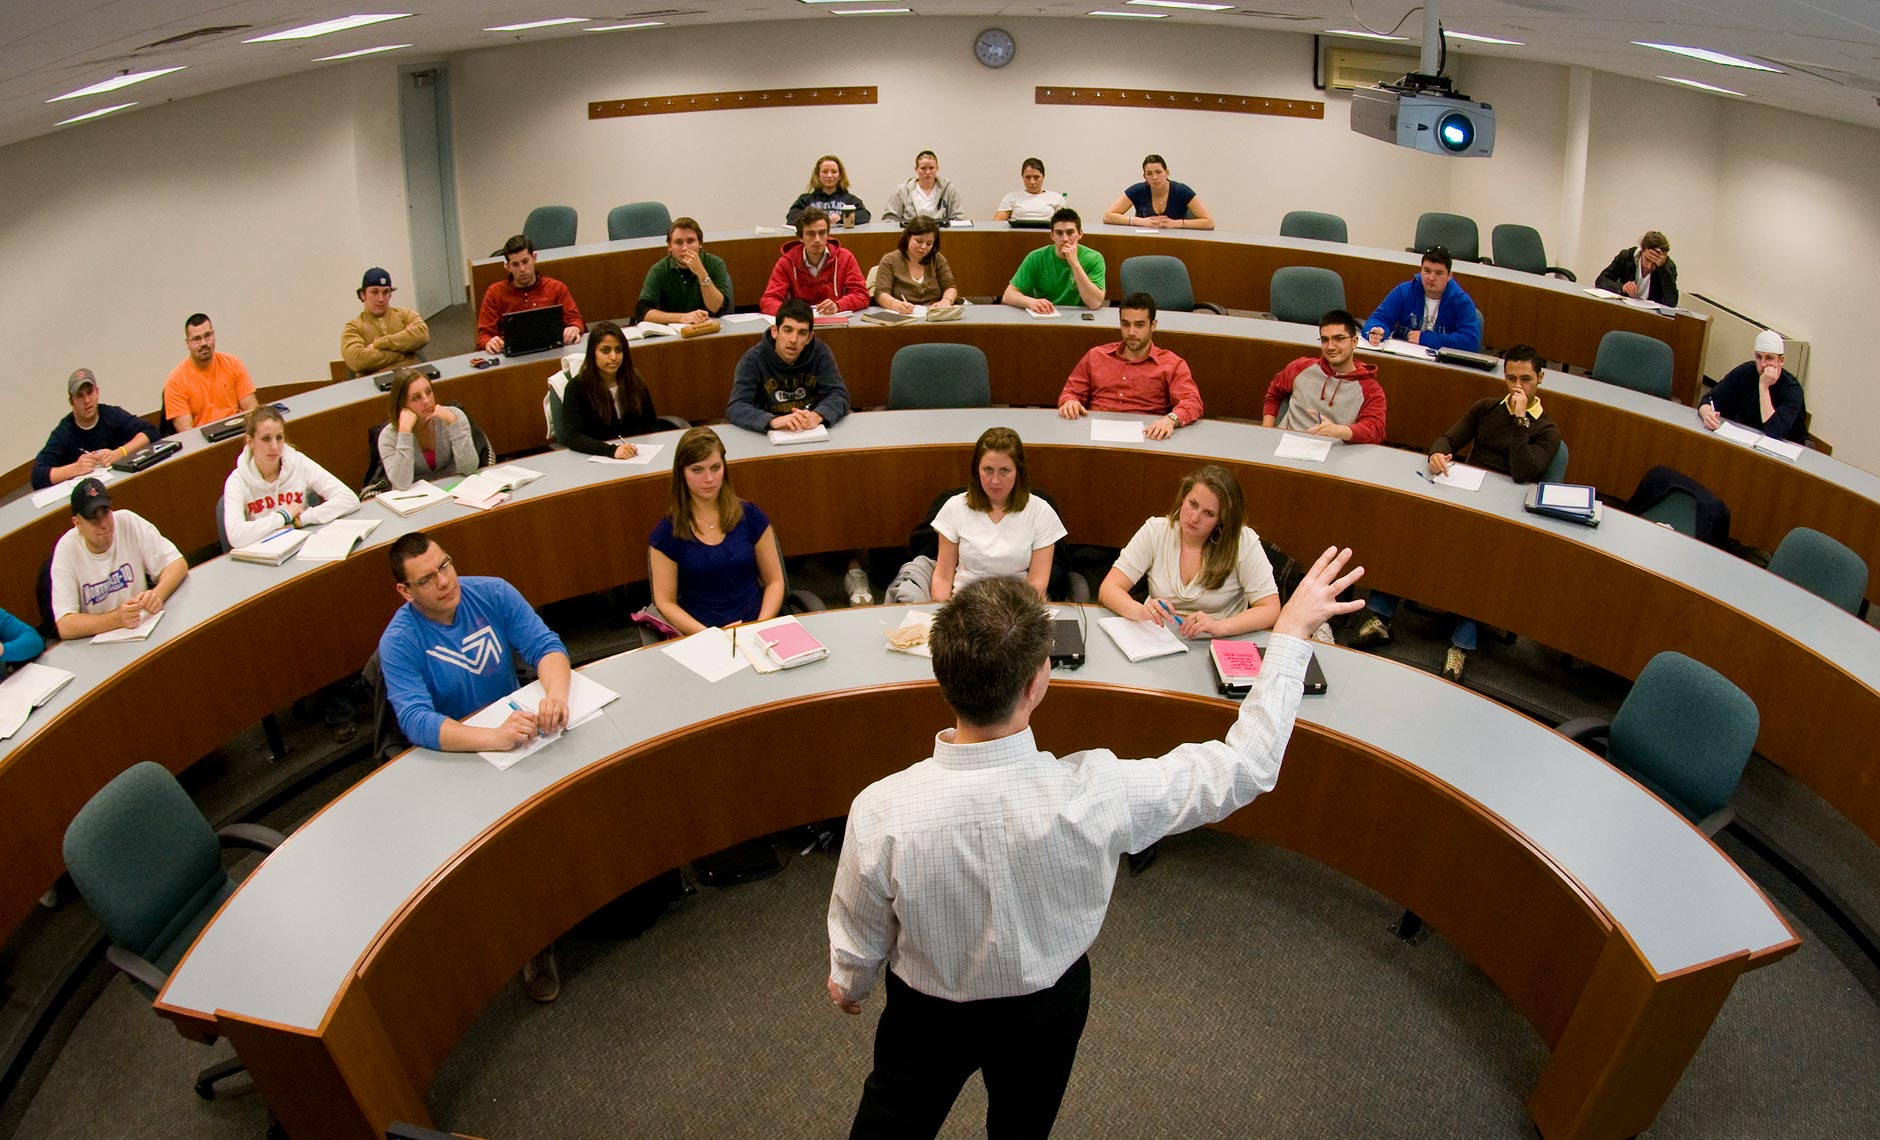 fisheye photograph of professor in college classroom